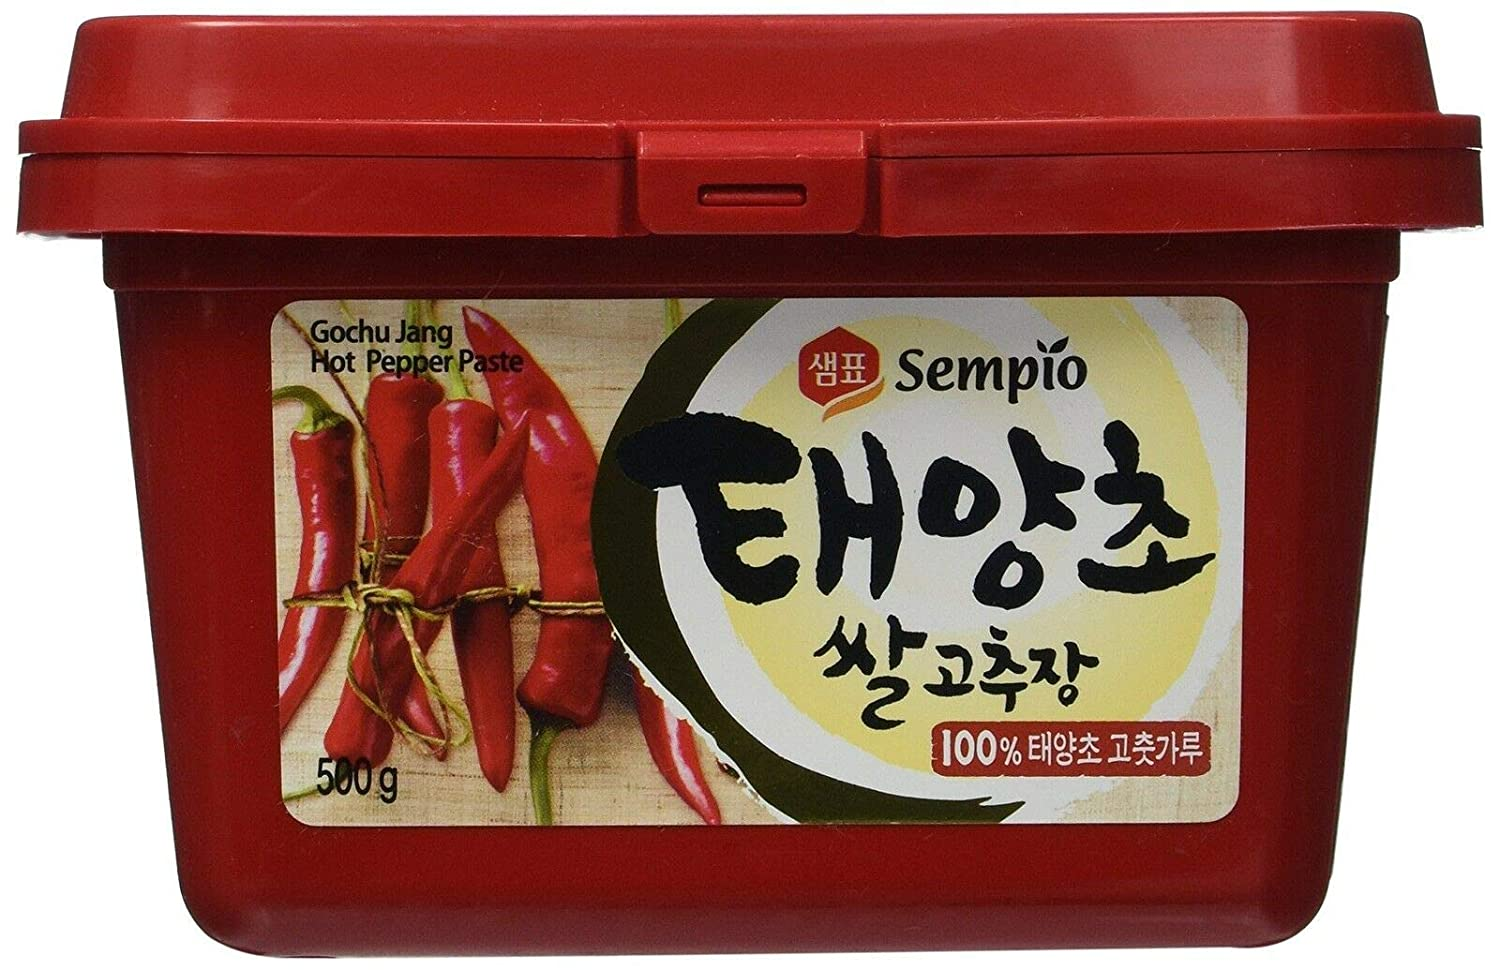 Sempio Hot Pepper Paste (Gochujang) (1.1 lbs)